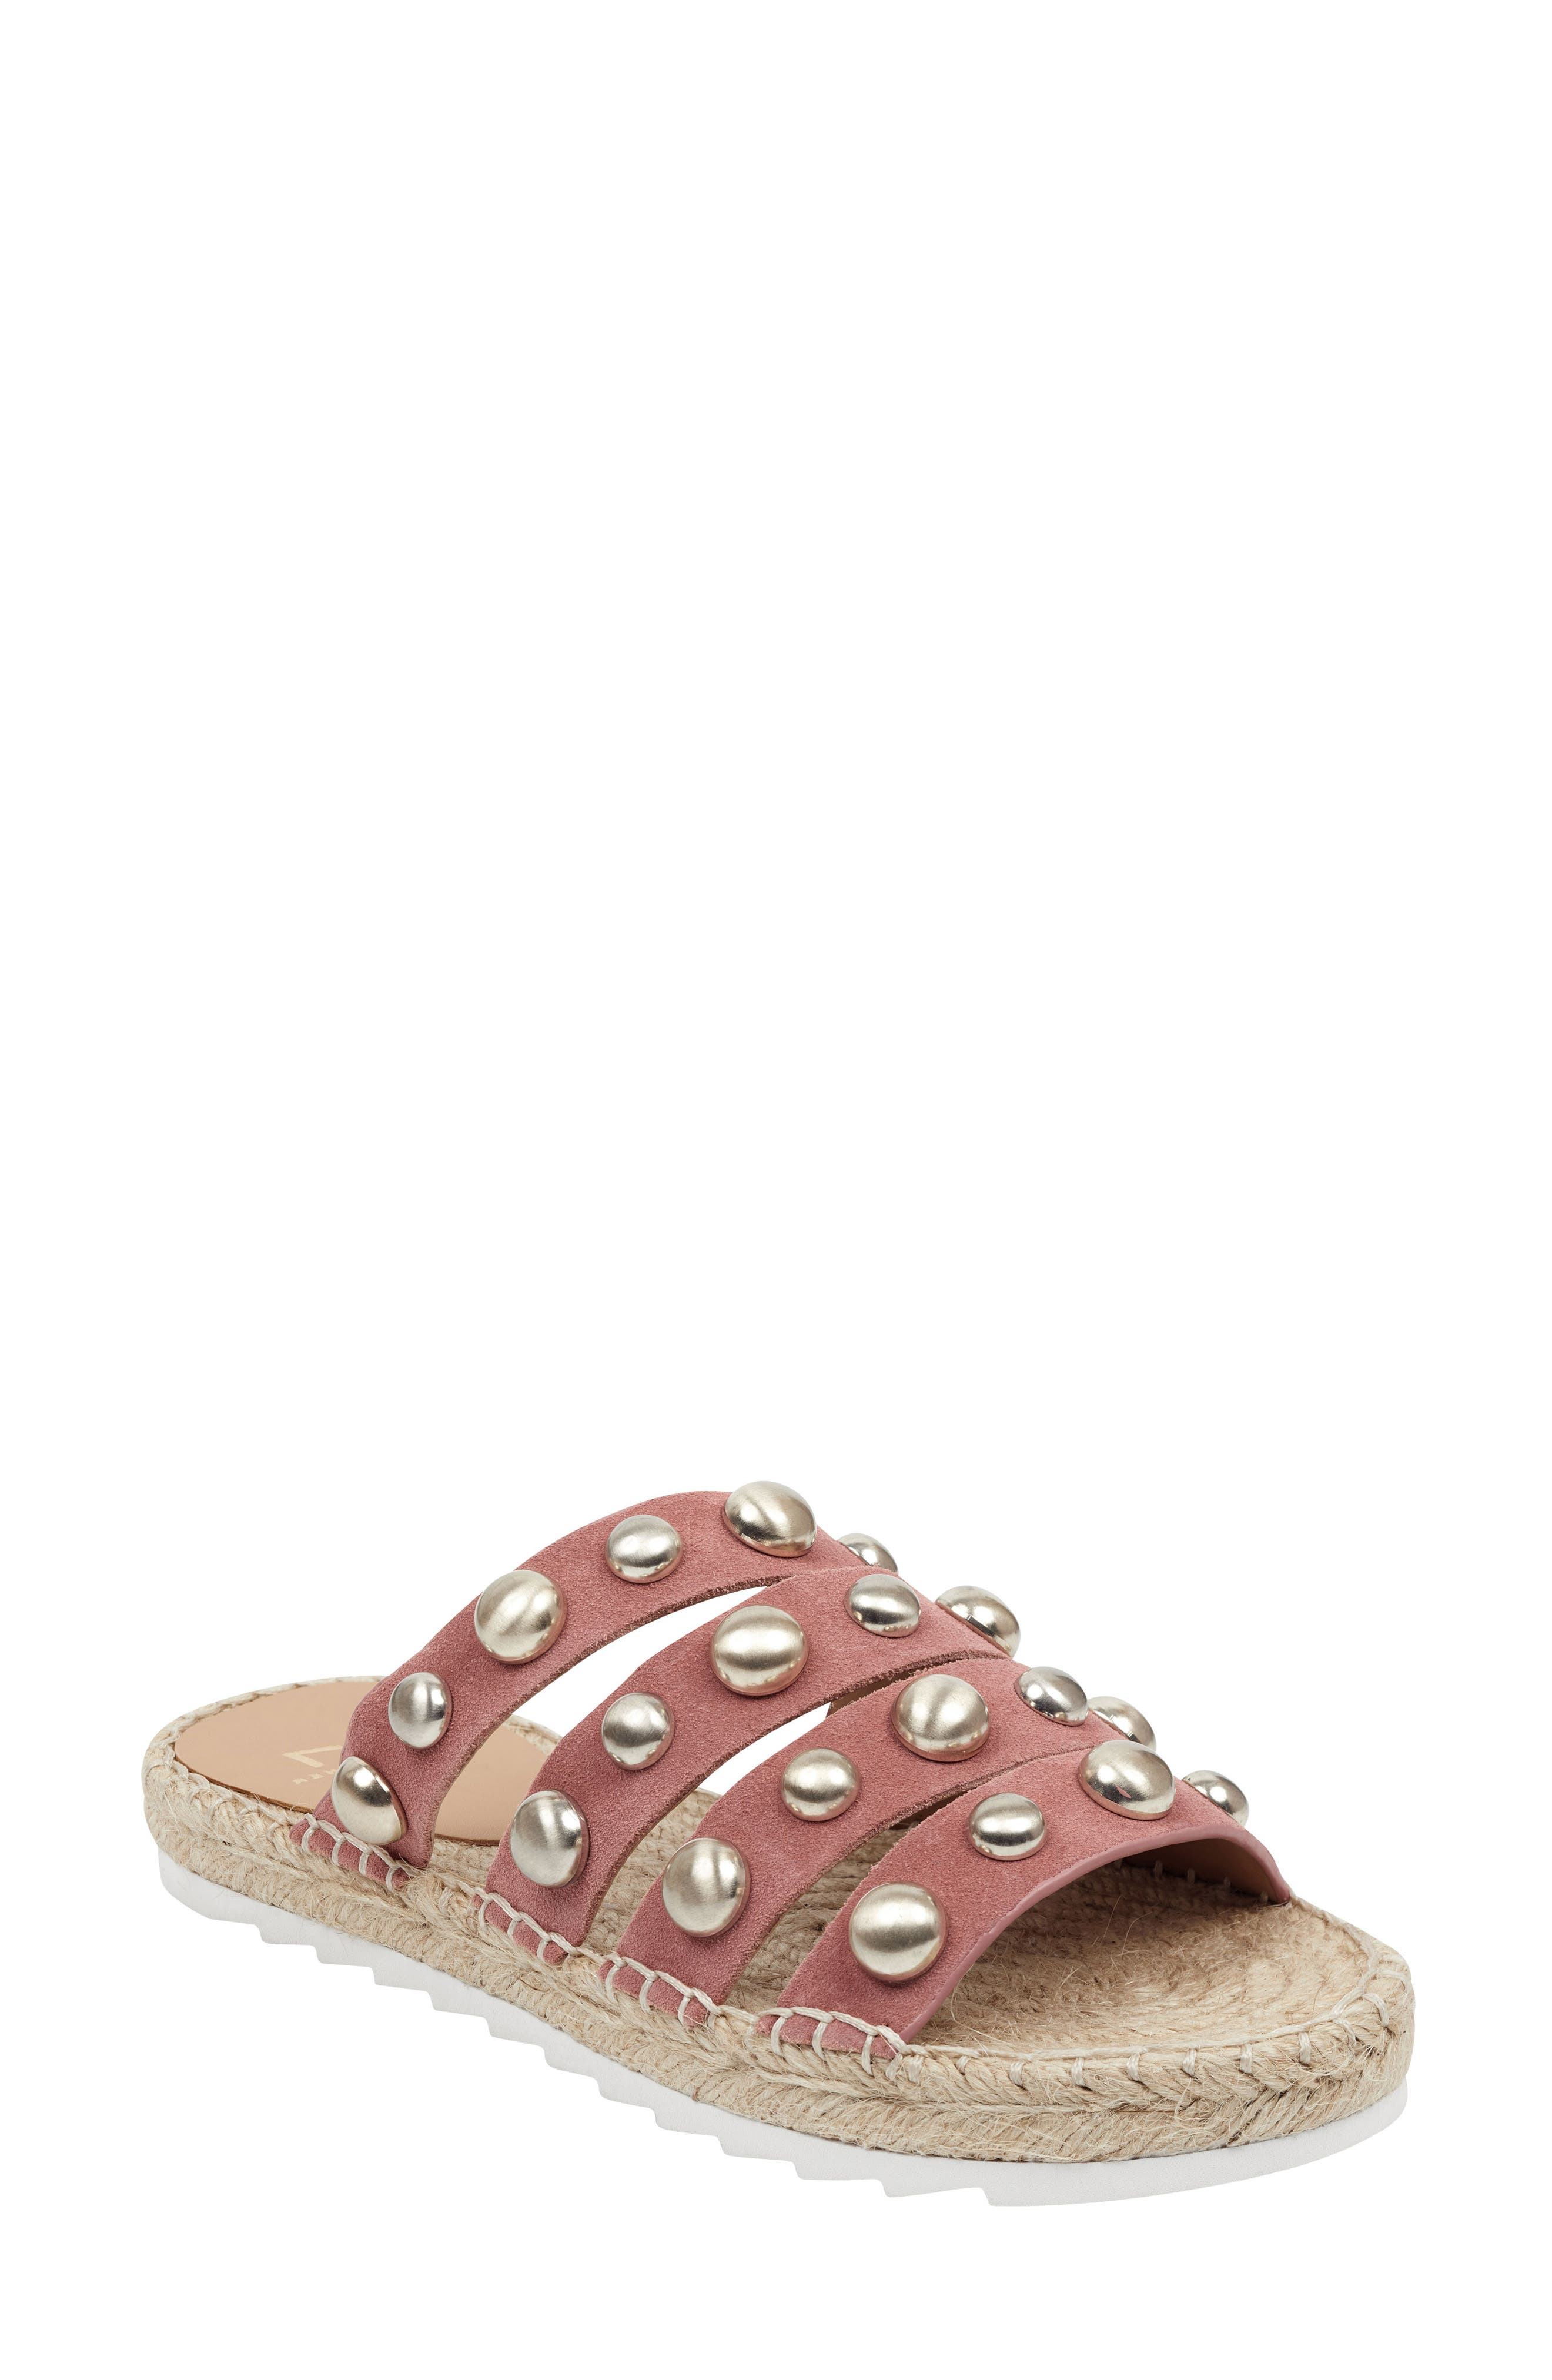 Marc Fisher Ltd Brandie Strappy Studded Slide Sandal, Pink